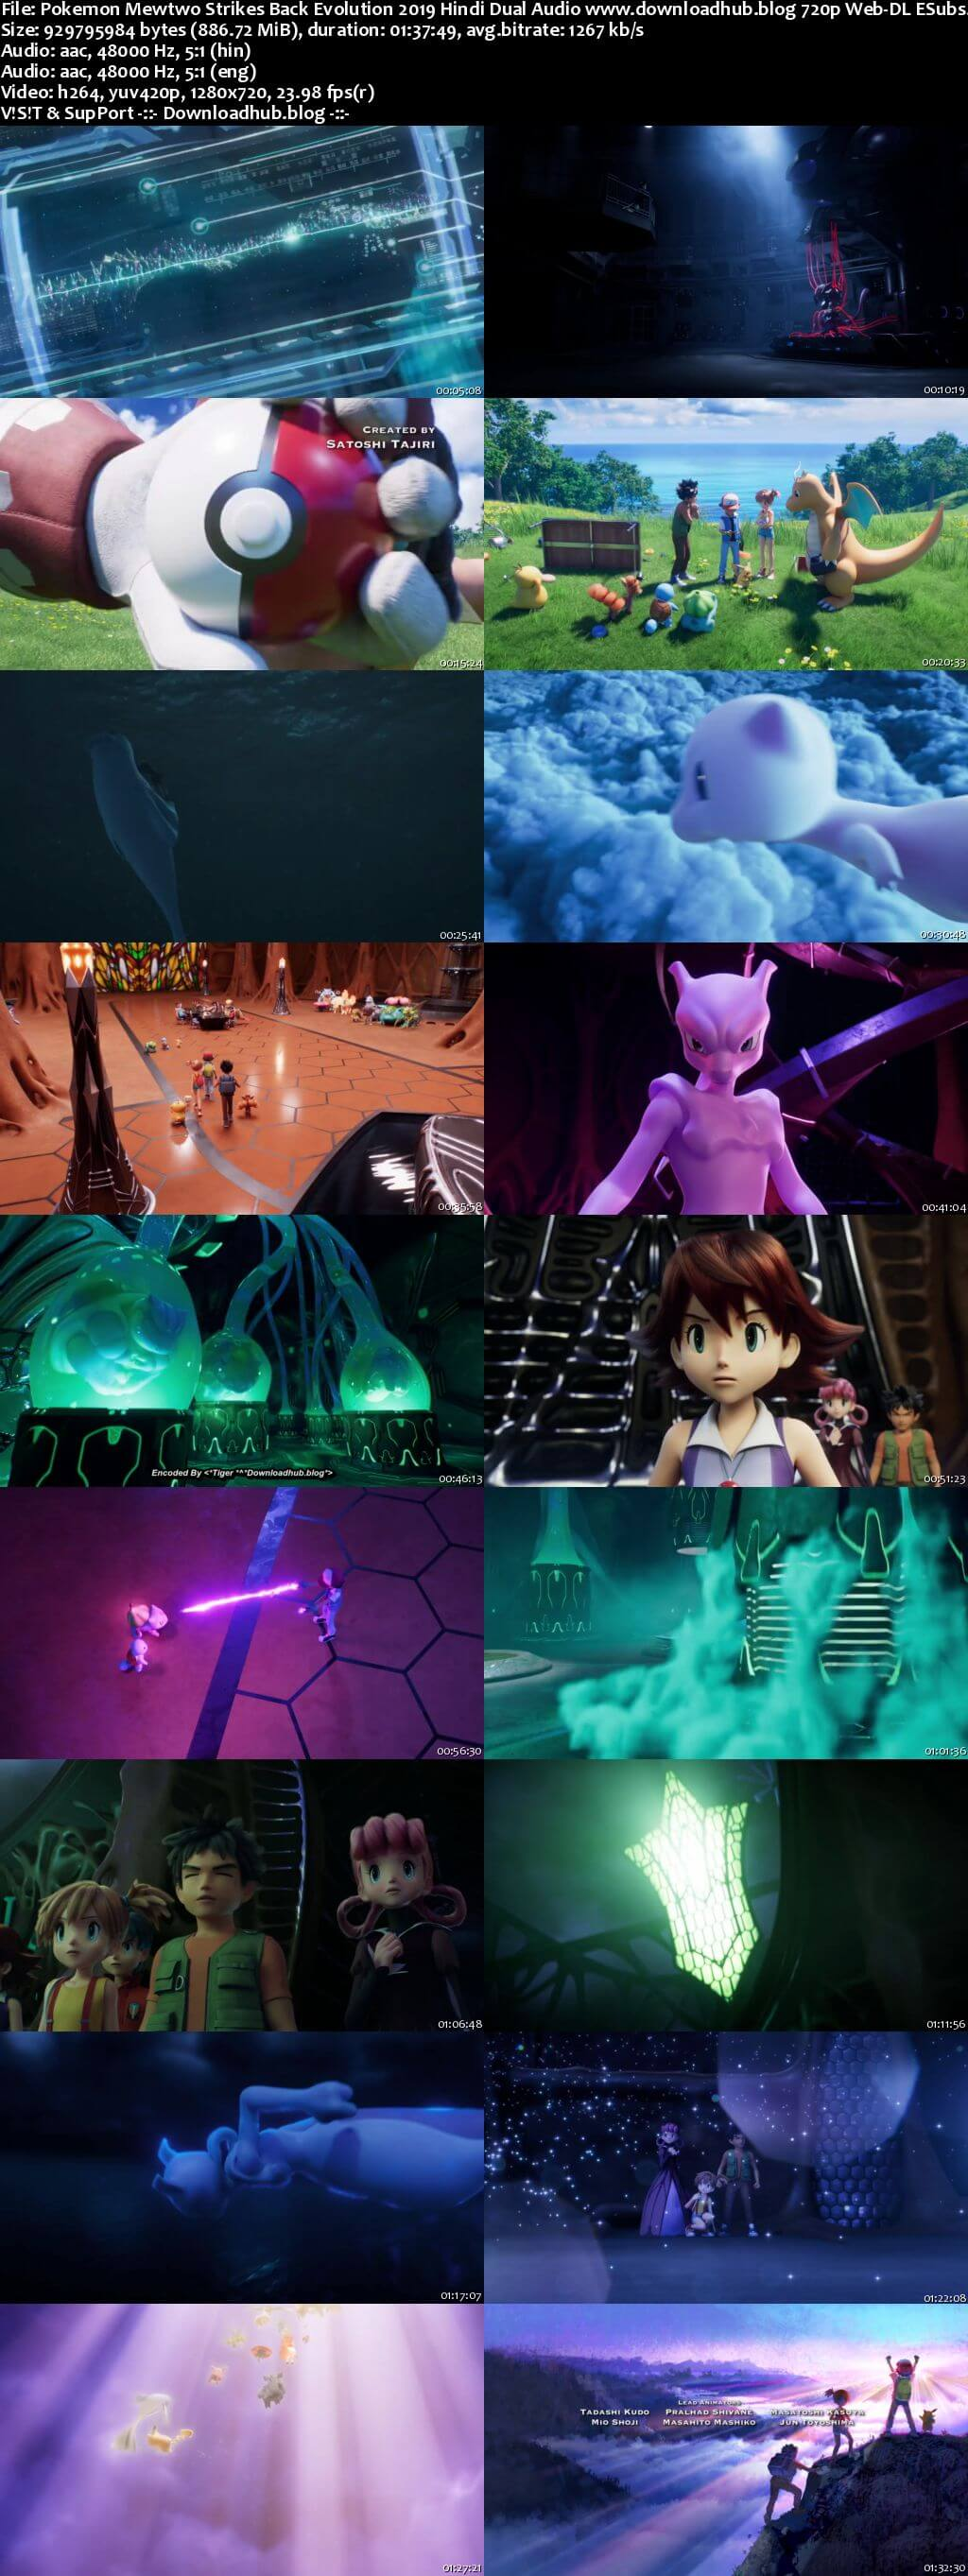 Pokemon Mewtwo Strikes Back Evolution 2019 Hindi Dual Audio 720p Web-DL ESubs